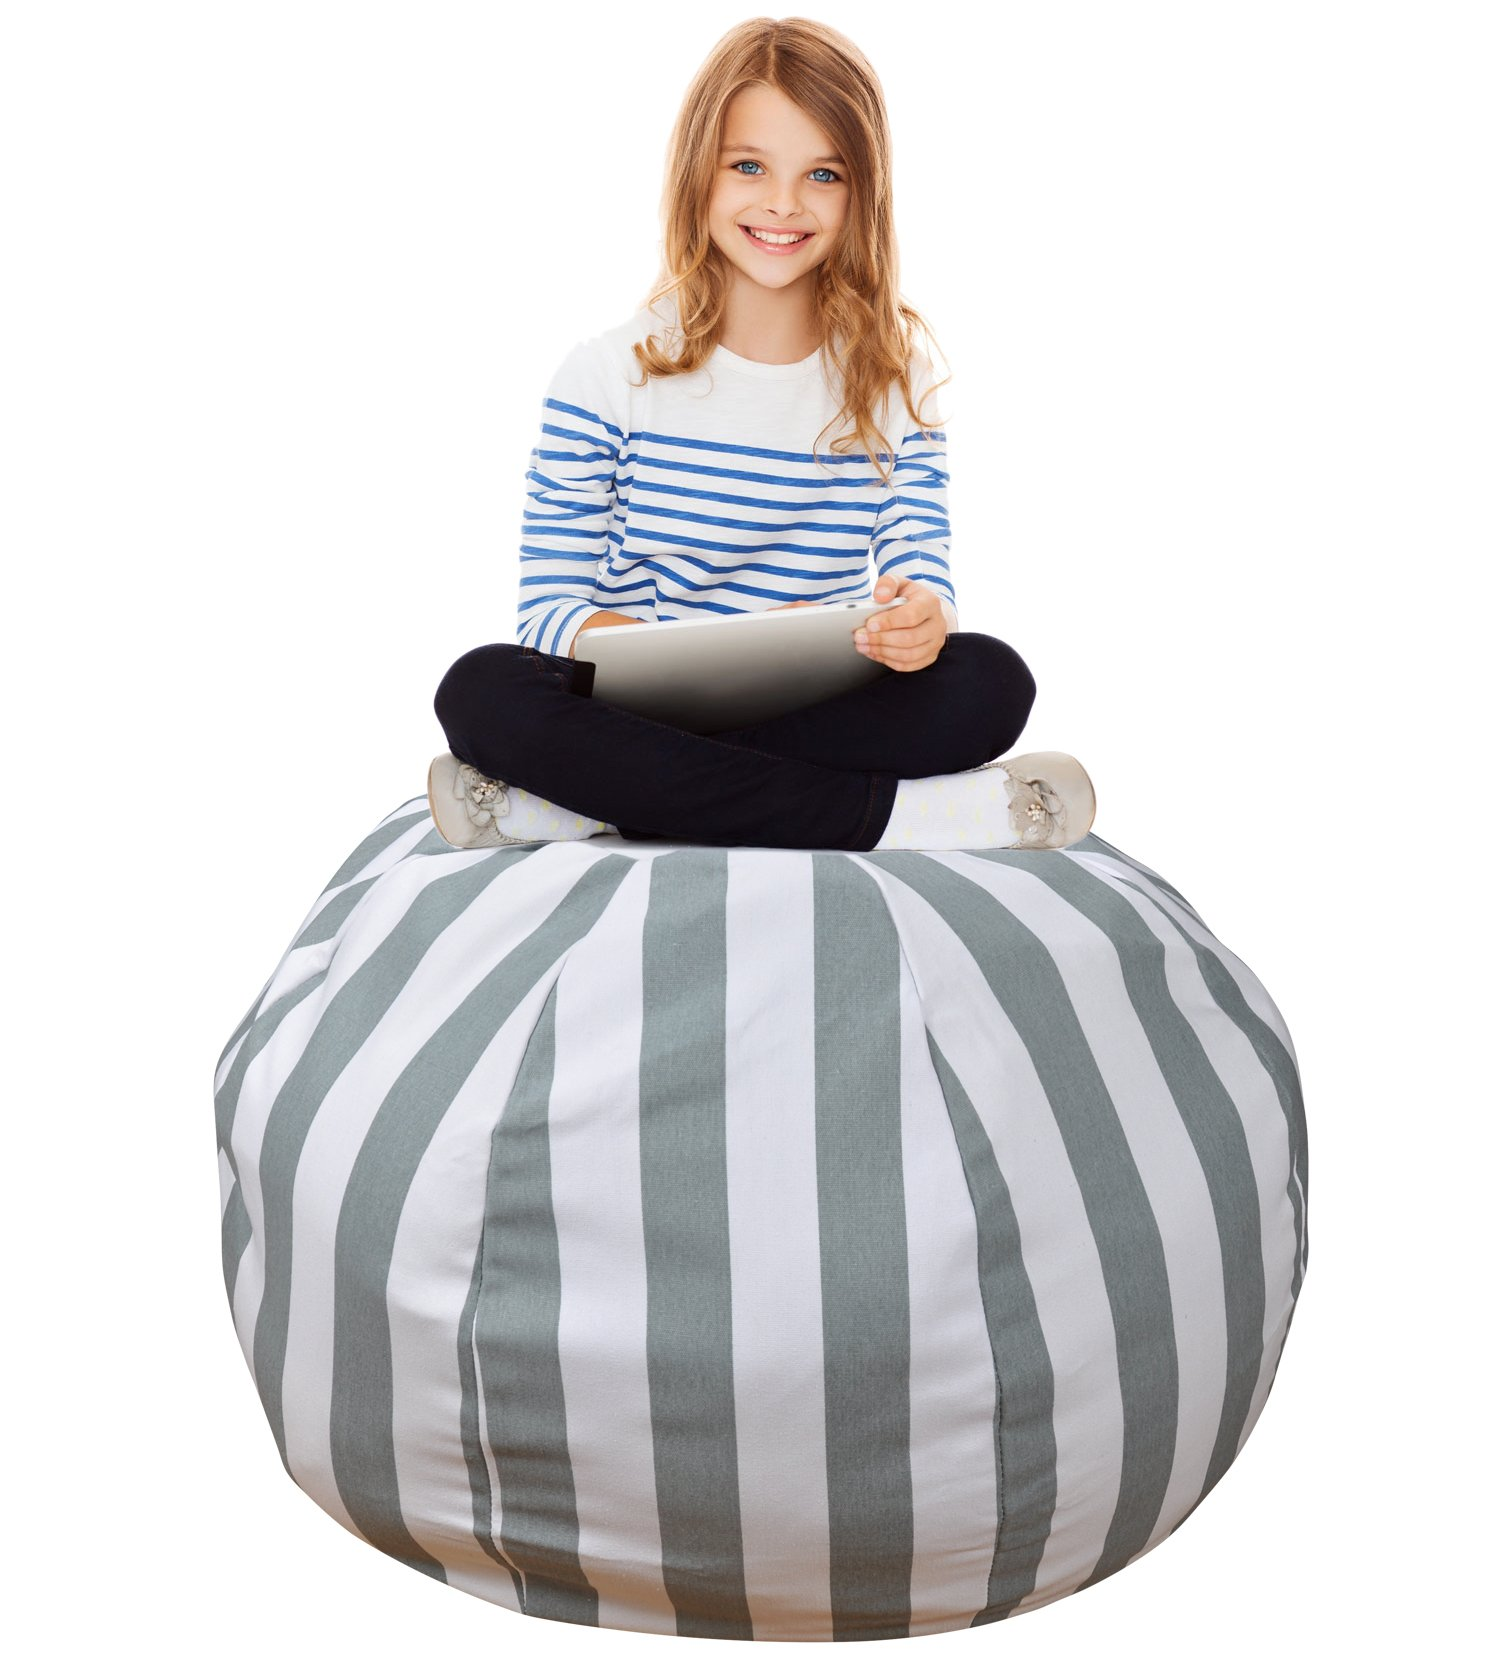 Stuffed Animal Storage Bean Bag –Extra Large Organization Sack Chair- Premium Quality Cotton Canvas- Easy Solution for Extra Toys / Blankets / Covers / Towels / Clothes -38 inches, Grey Striped